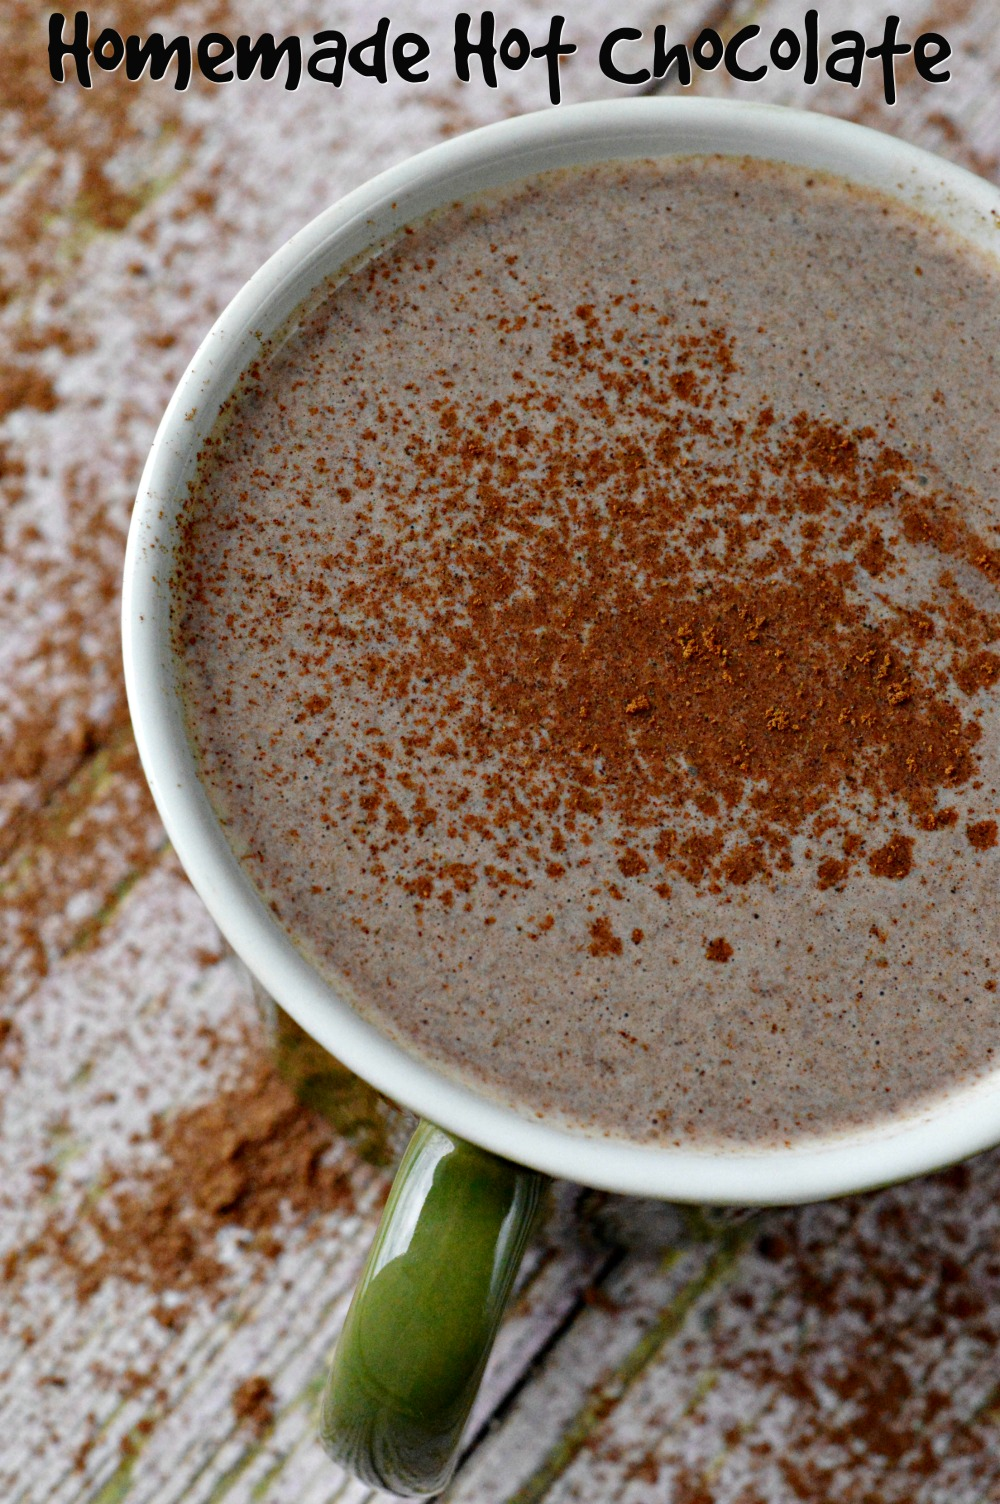 This is best hot chocolate mix topped with a little Cinnamon